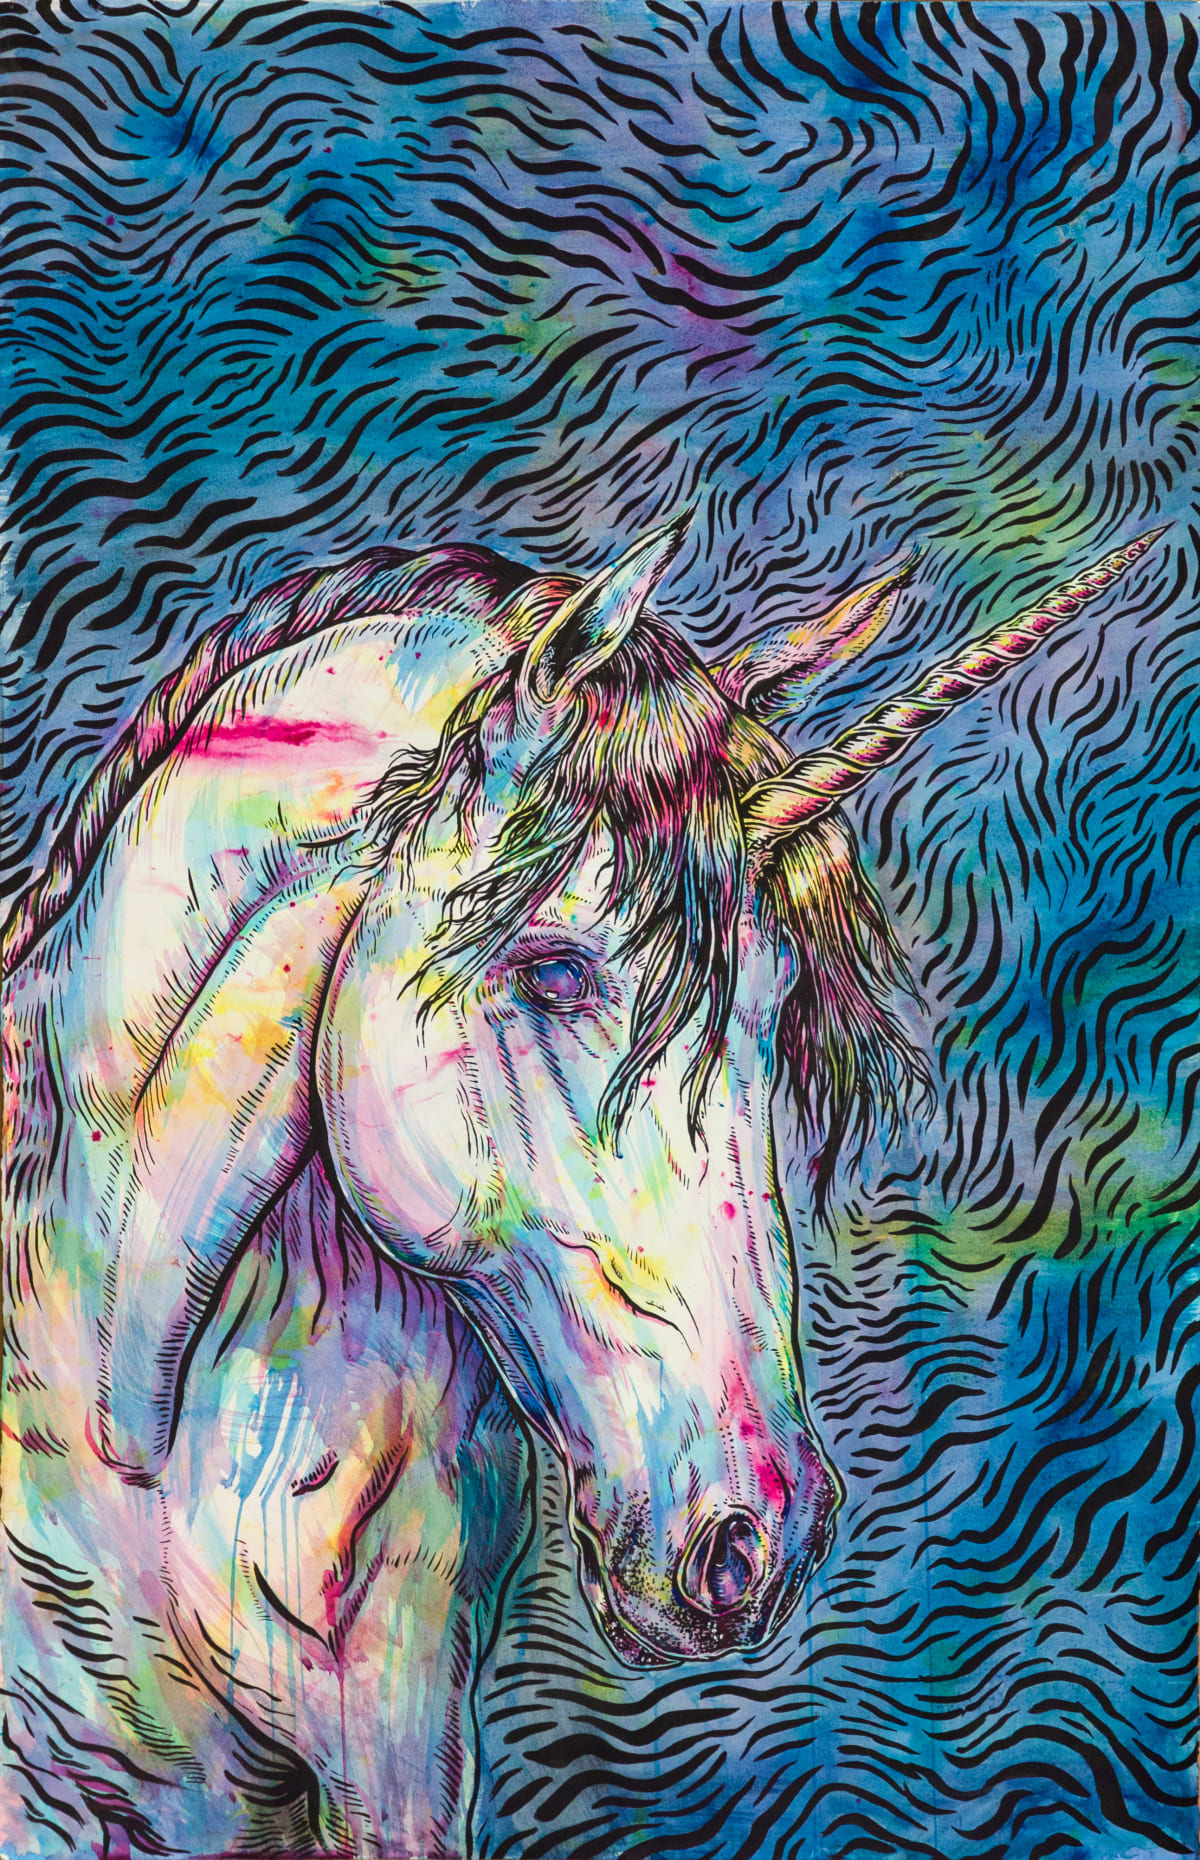 Todd Ryan White, Indrik: Unicorn, 2019